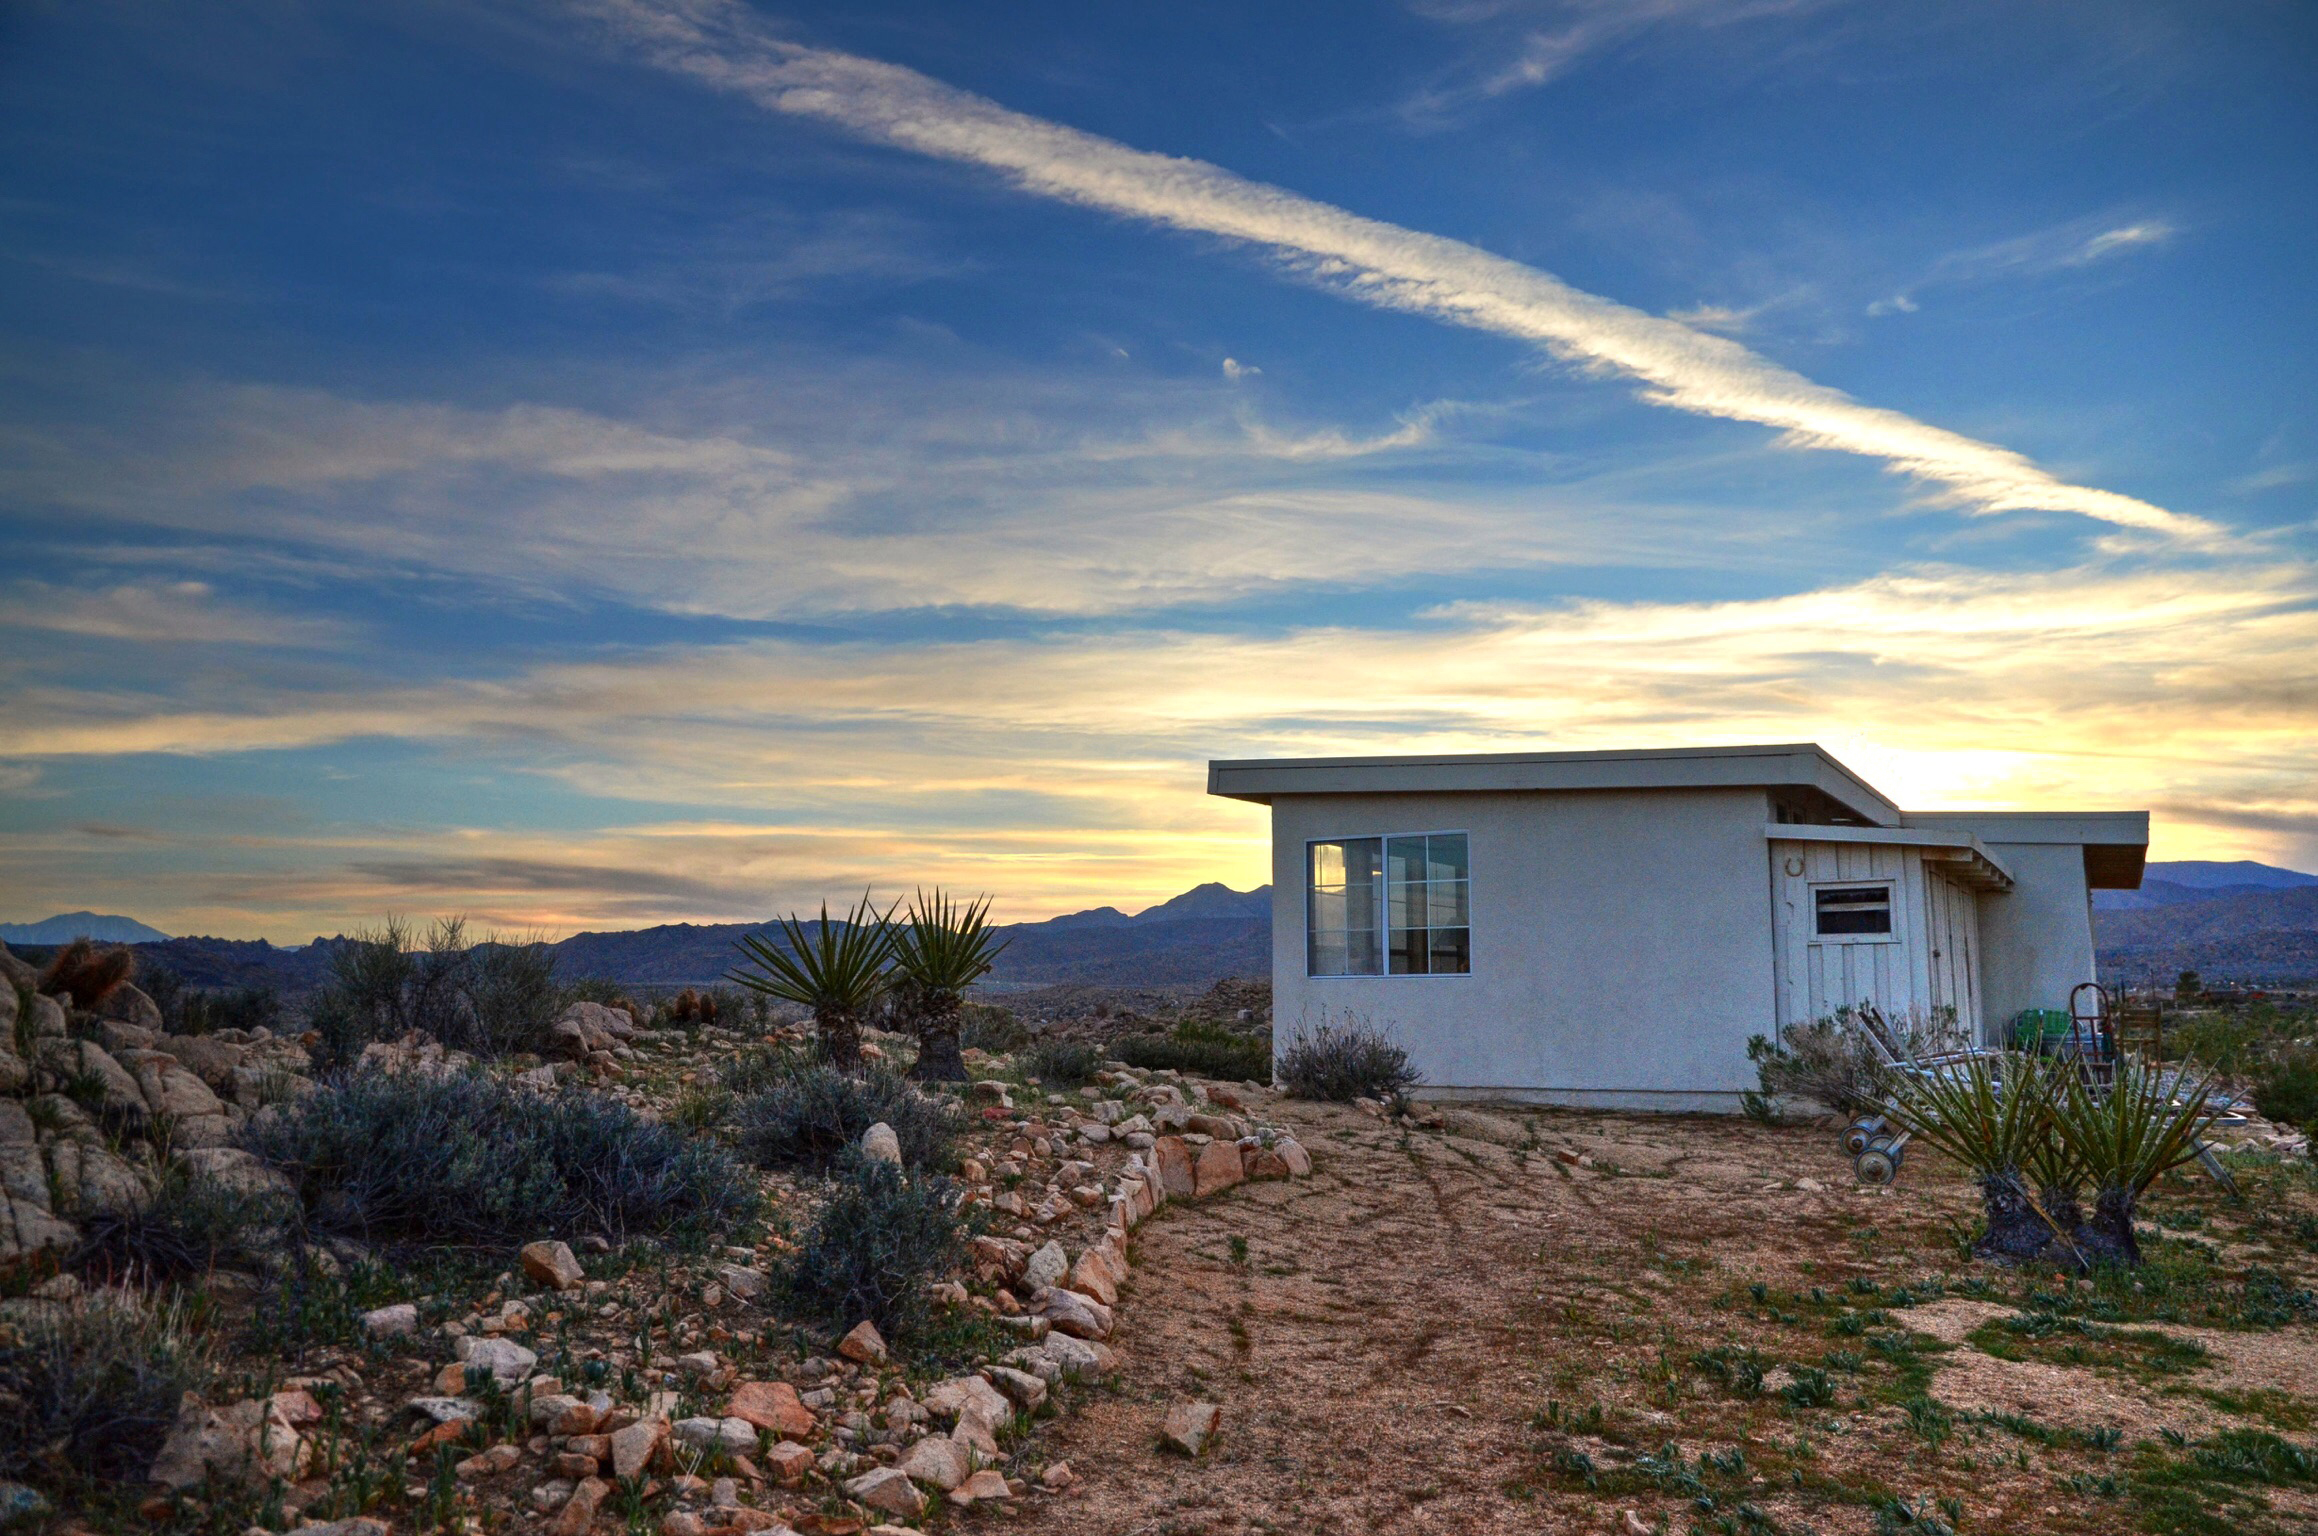 Los-Vientos-Hideaway-Sunset Side 1.jpg